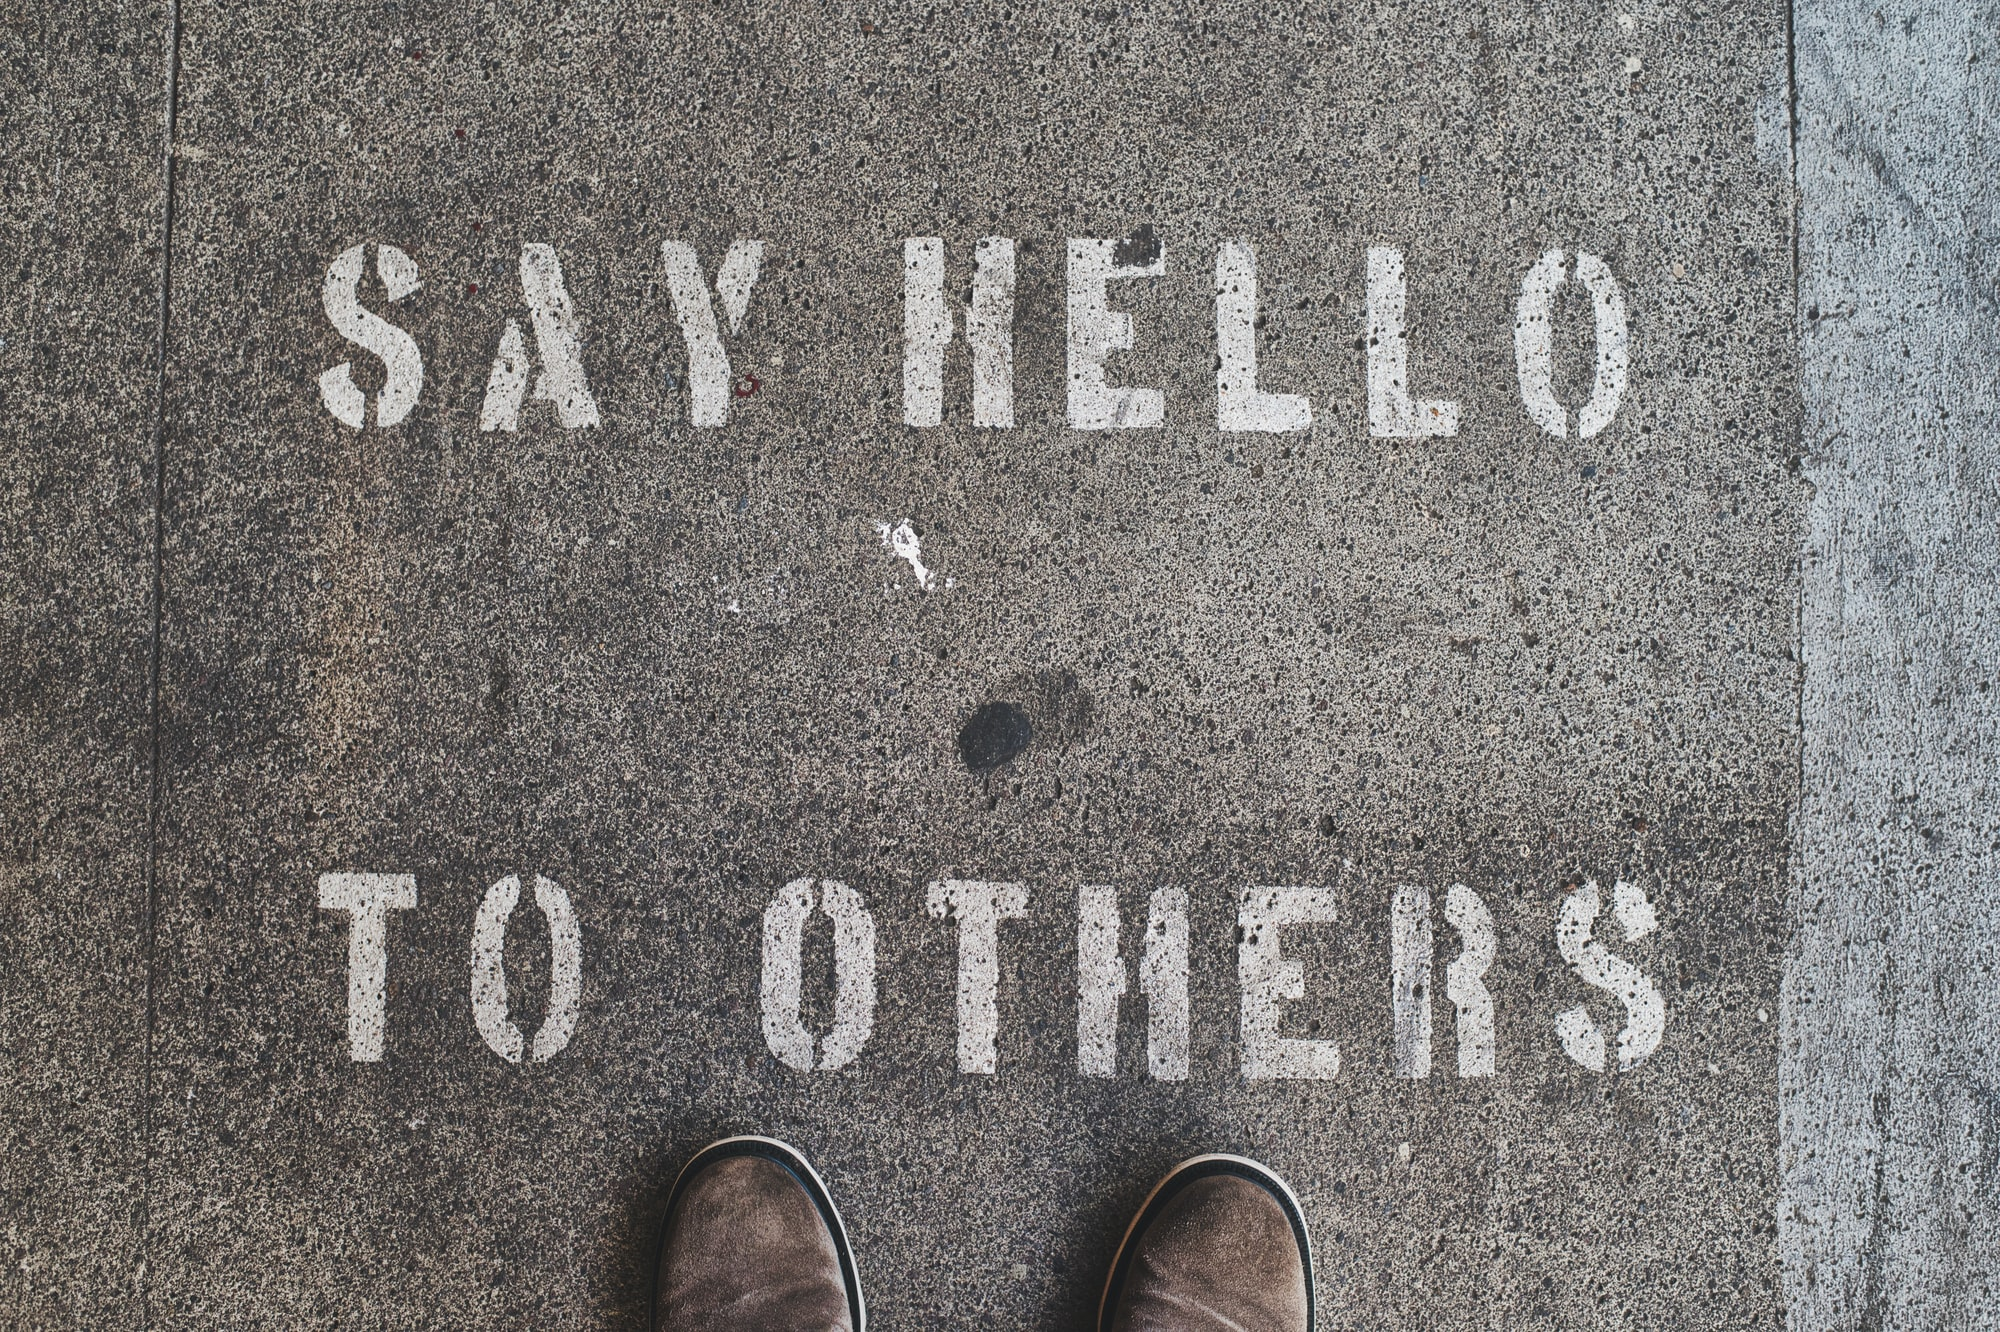 Painted on the sidewalk, not sure why but I like it.